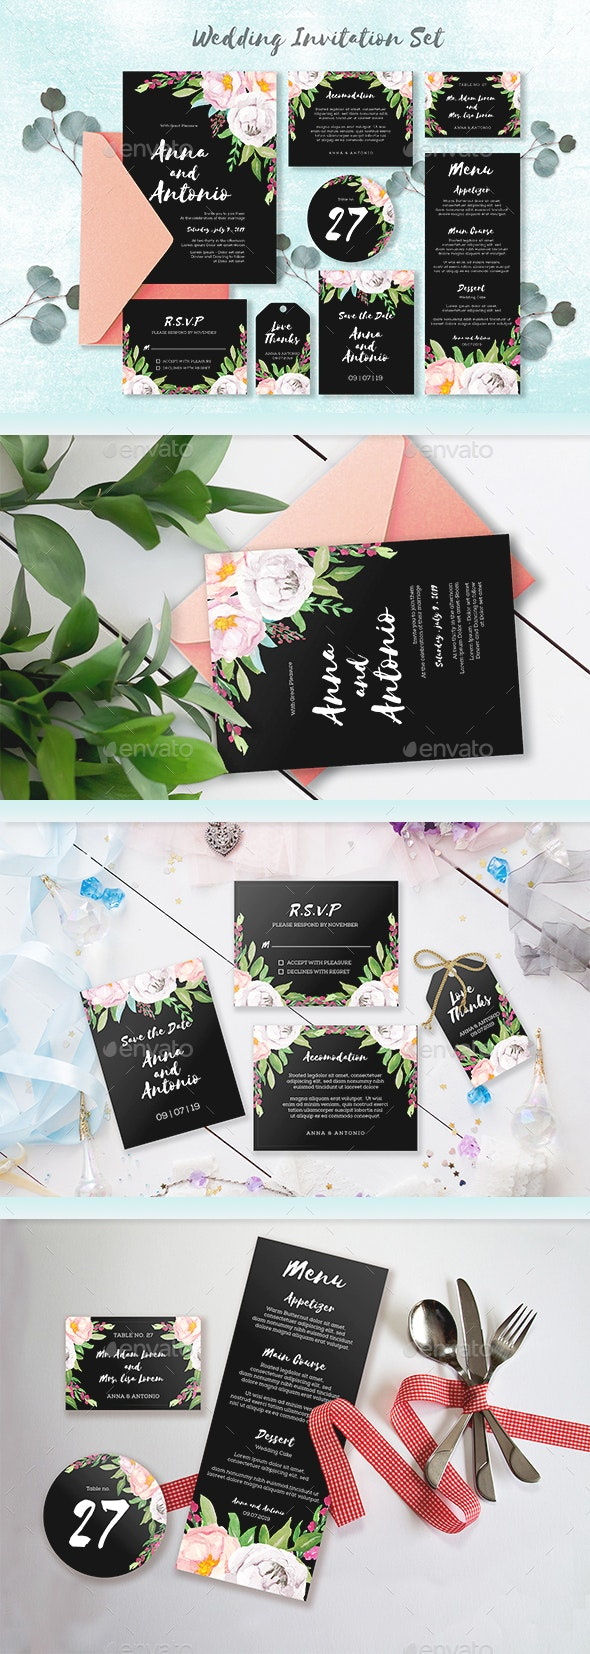 Watercolor Invitations Set Collection - Weddings Cards & Invites